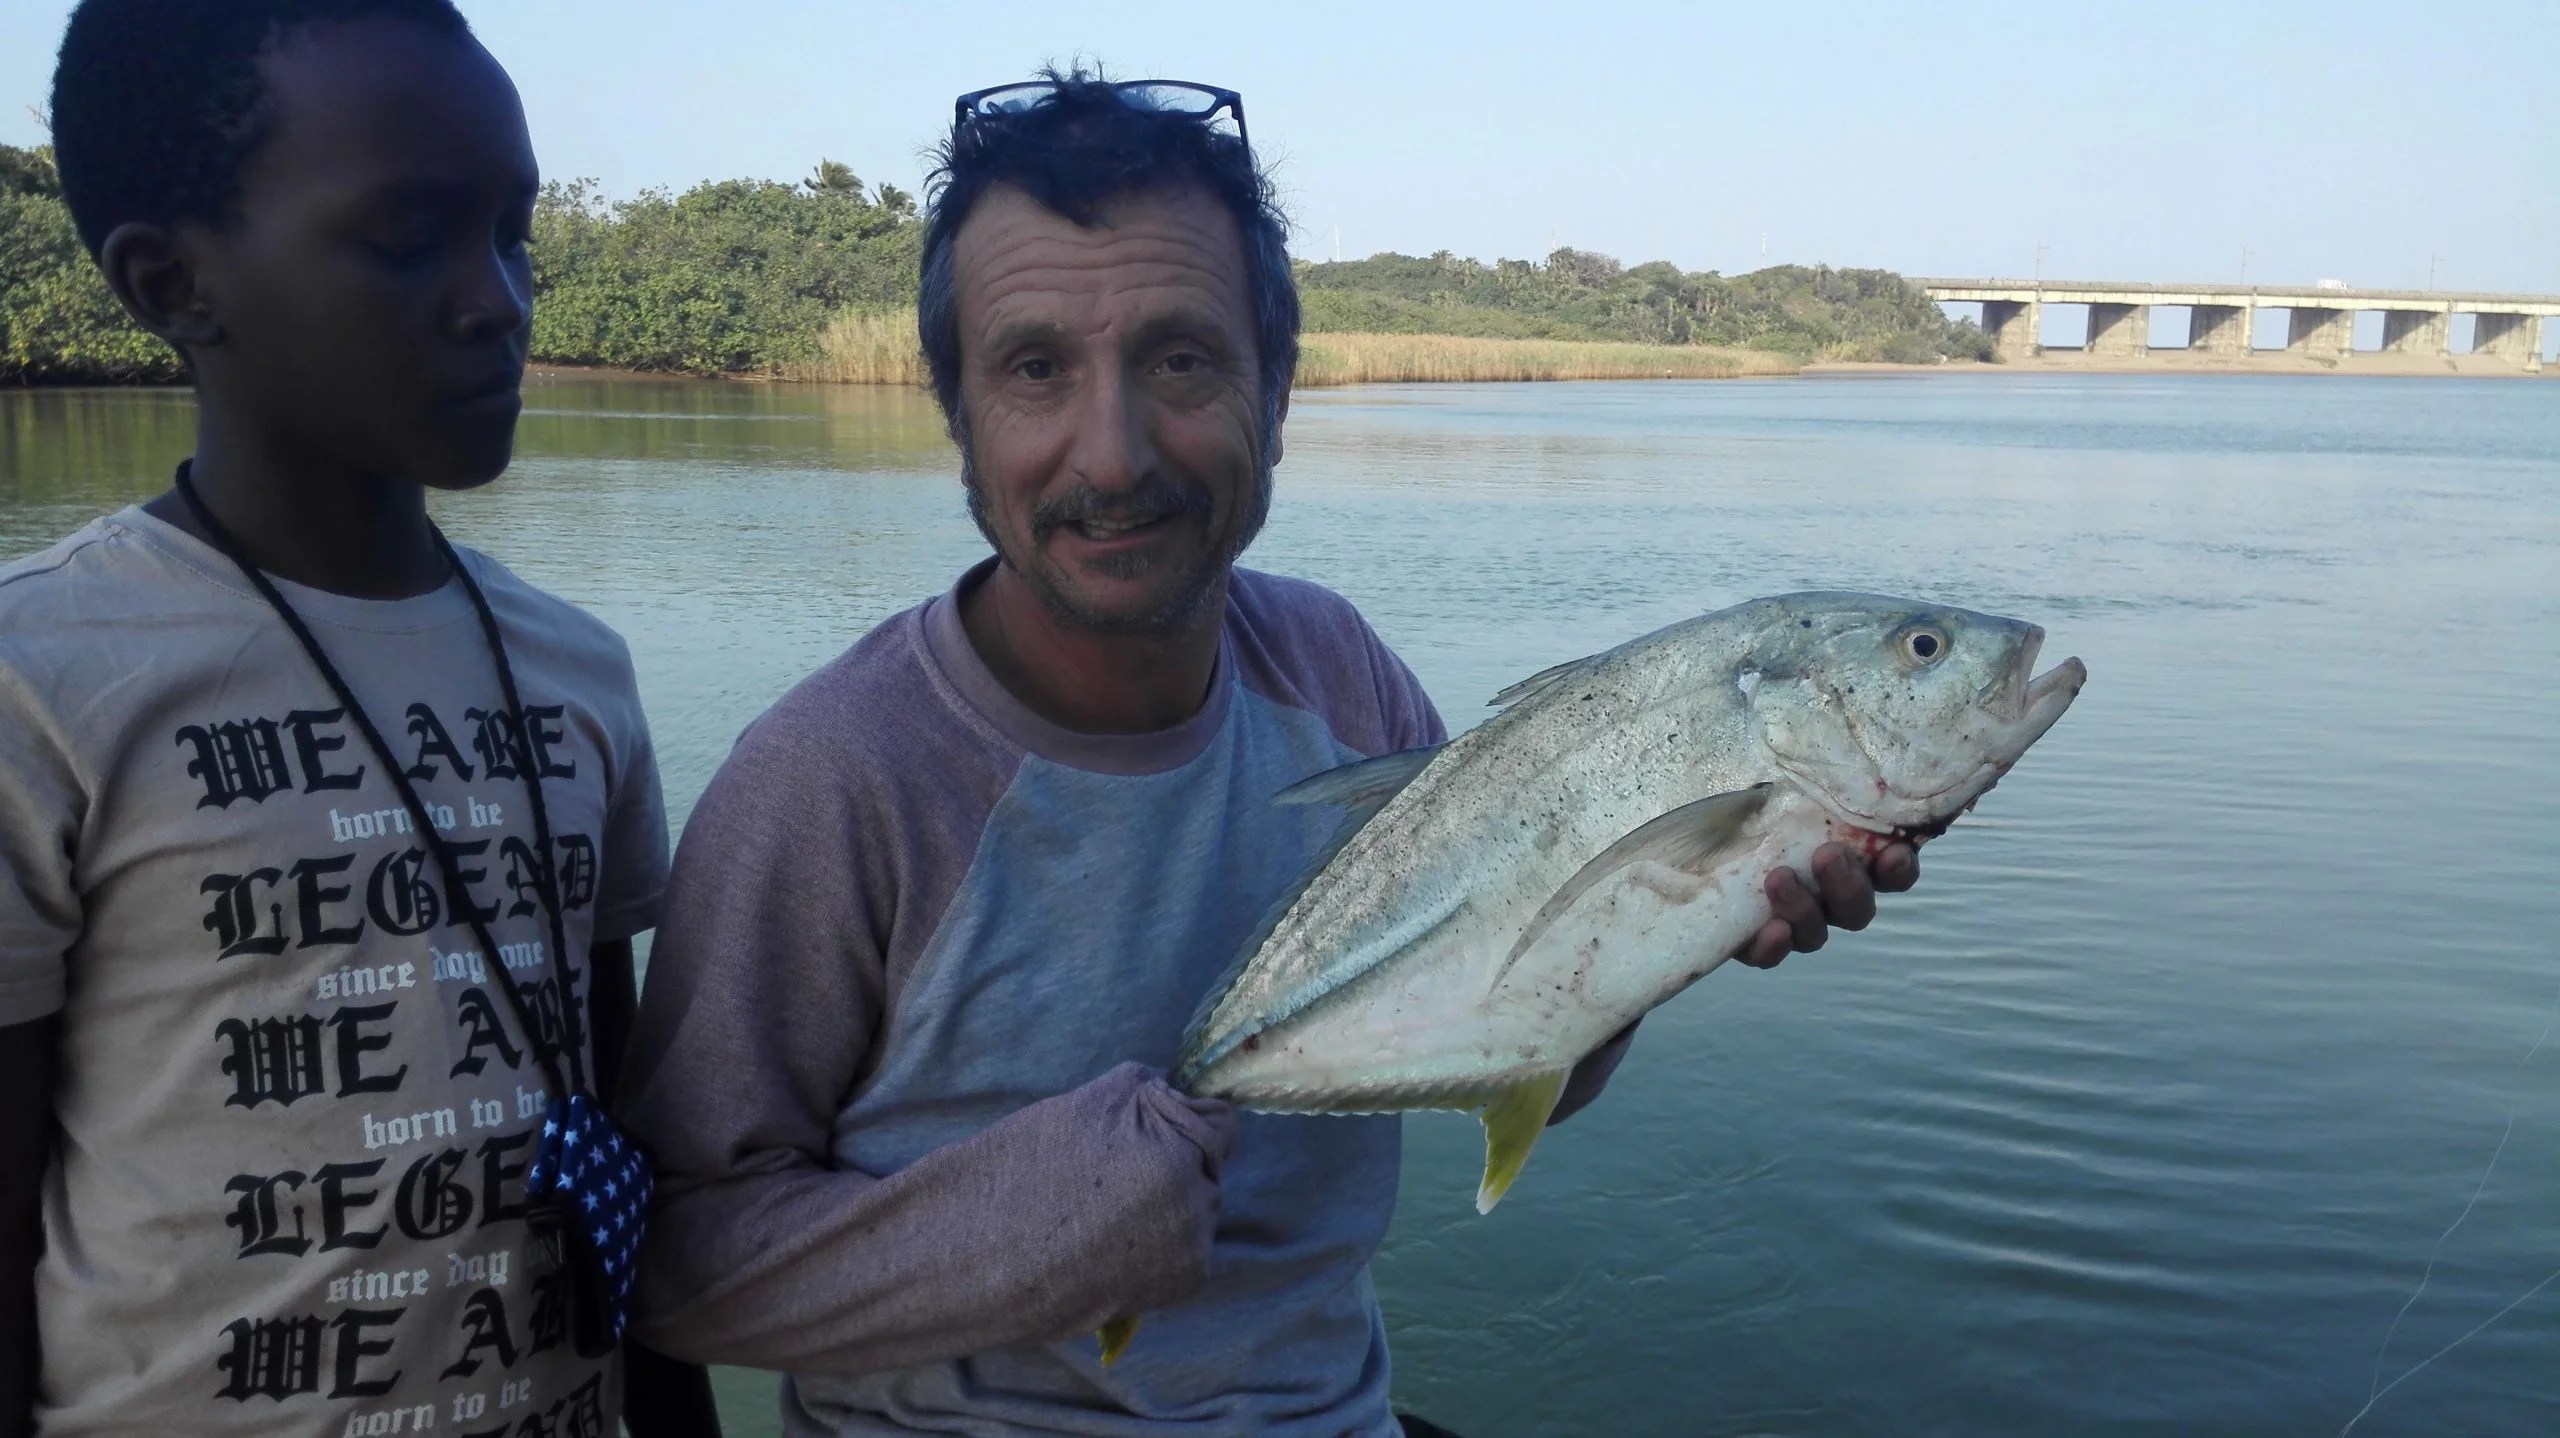 Fishin's Cool 2020 Fishing School is on at the Umzimkulu Marina